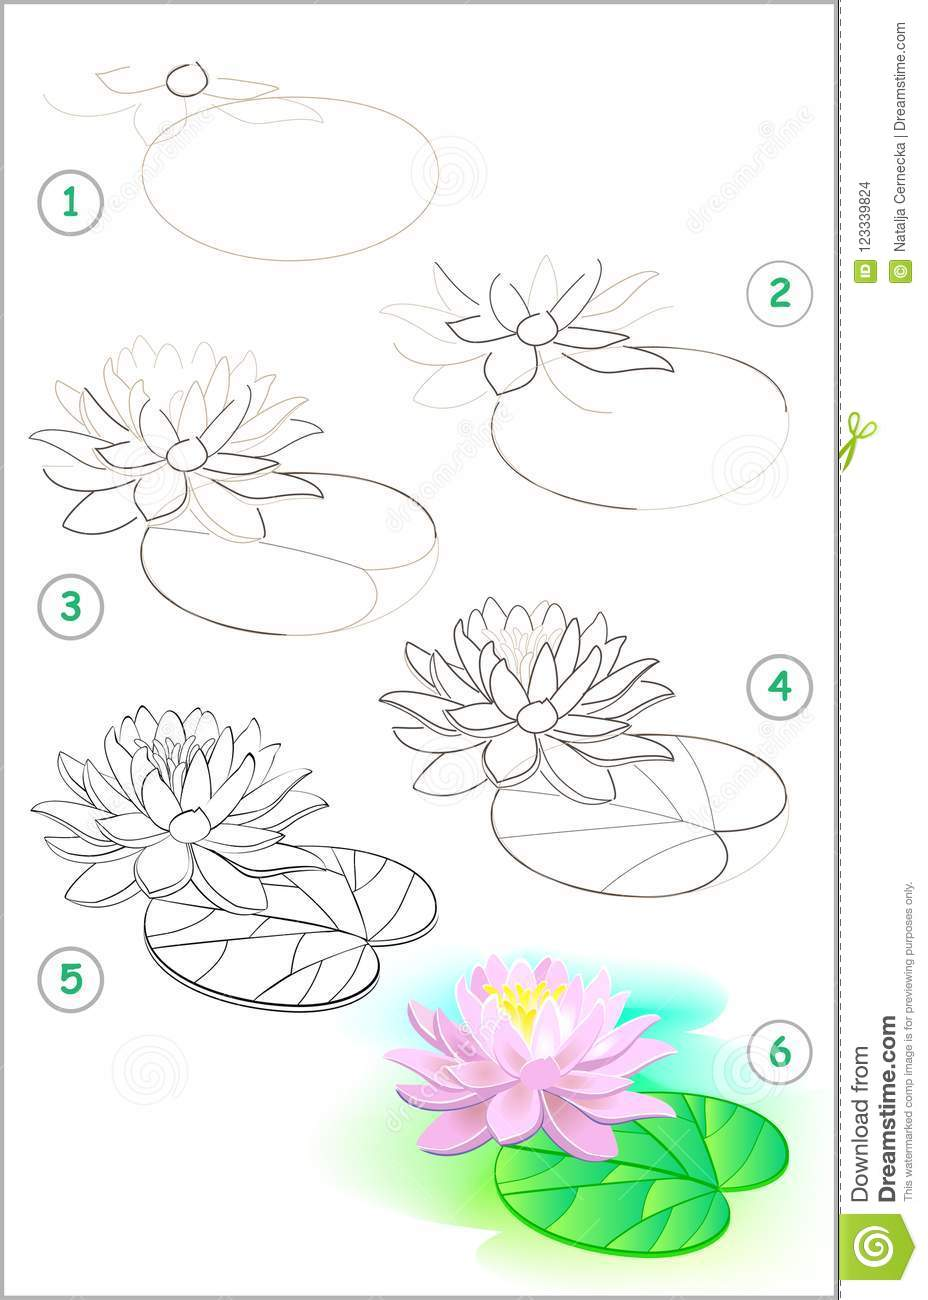 Page Shows How To Learn Step By Step To Draw A Water Lily Flower